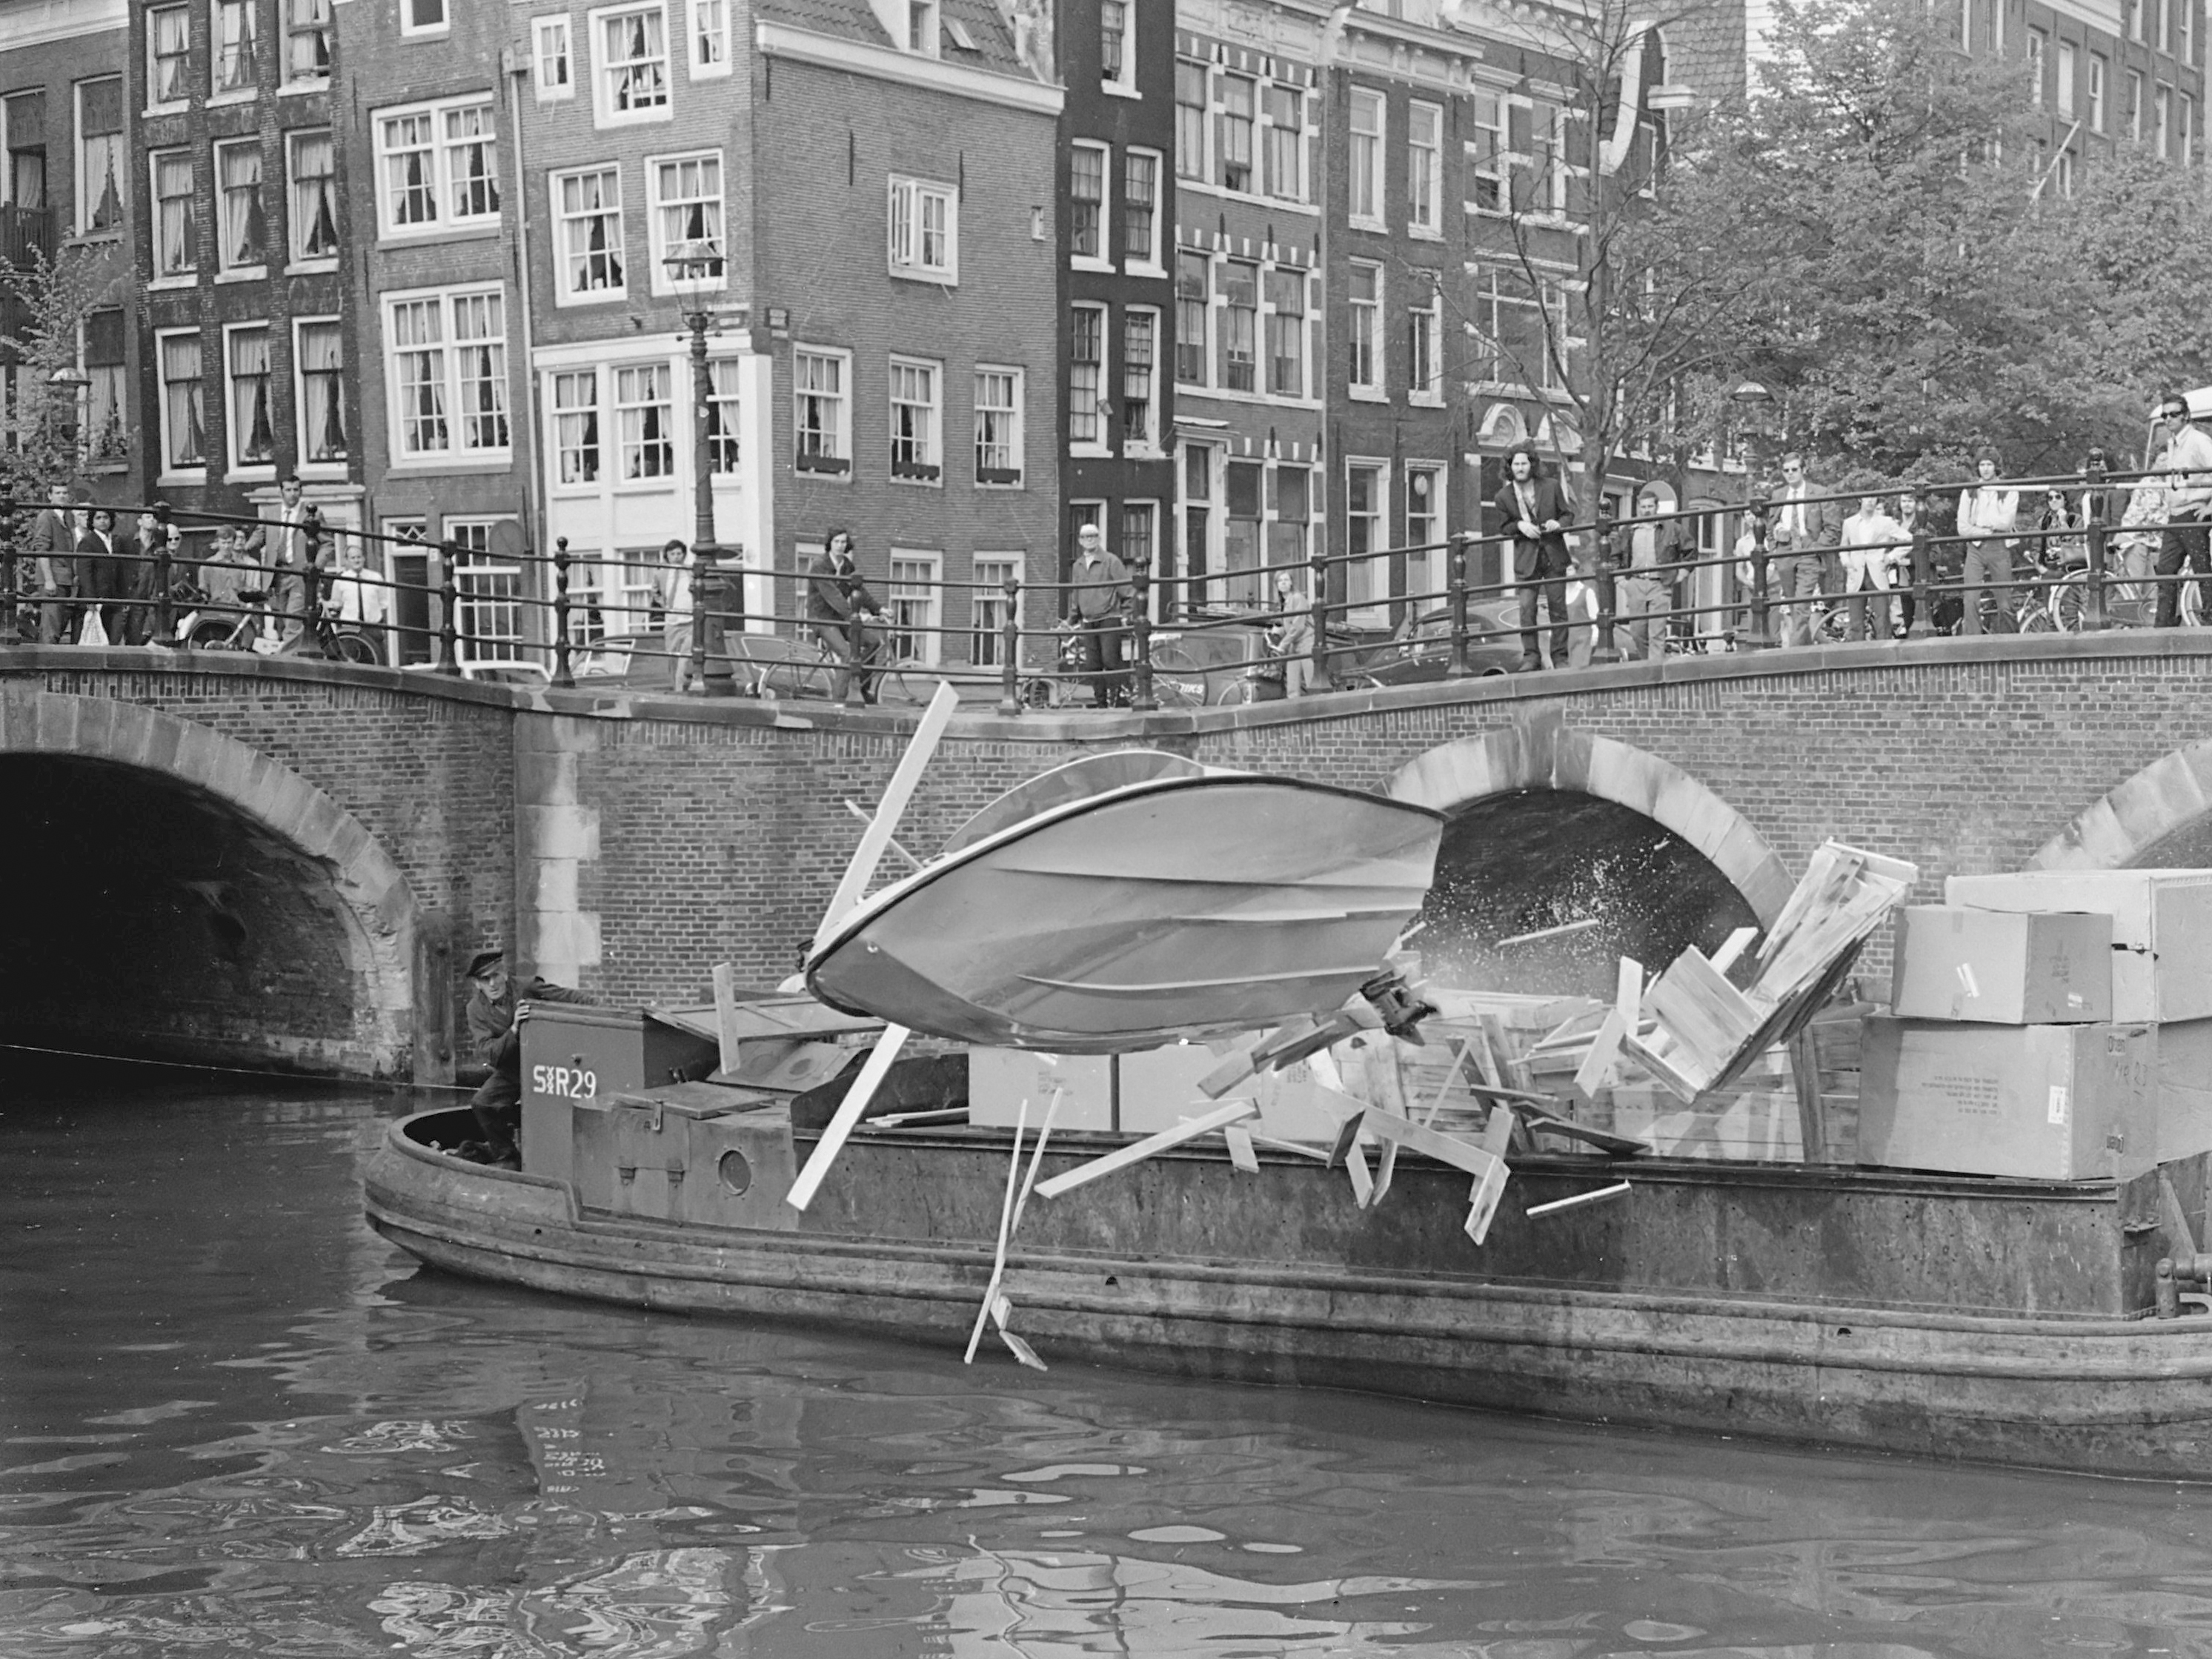 File:Opname voor Puppet on a Chain in Amsterdam (1970).jpg